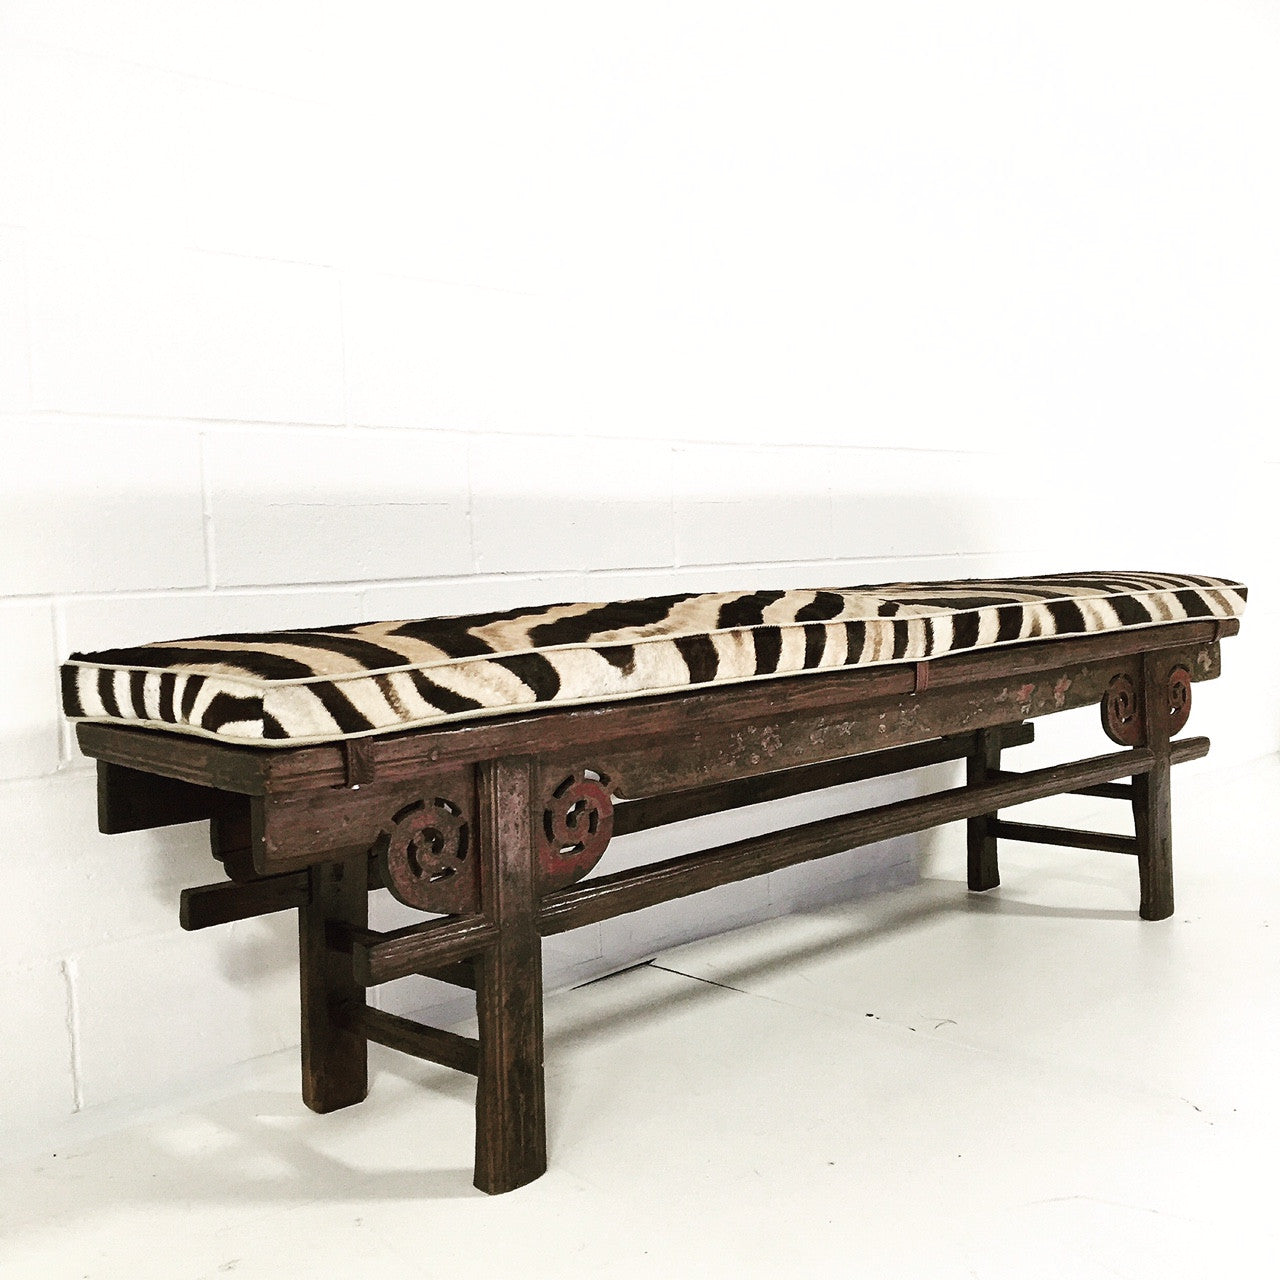 Painted Chinese Bench with Zebra Cushion - FORSYTH